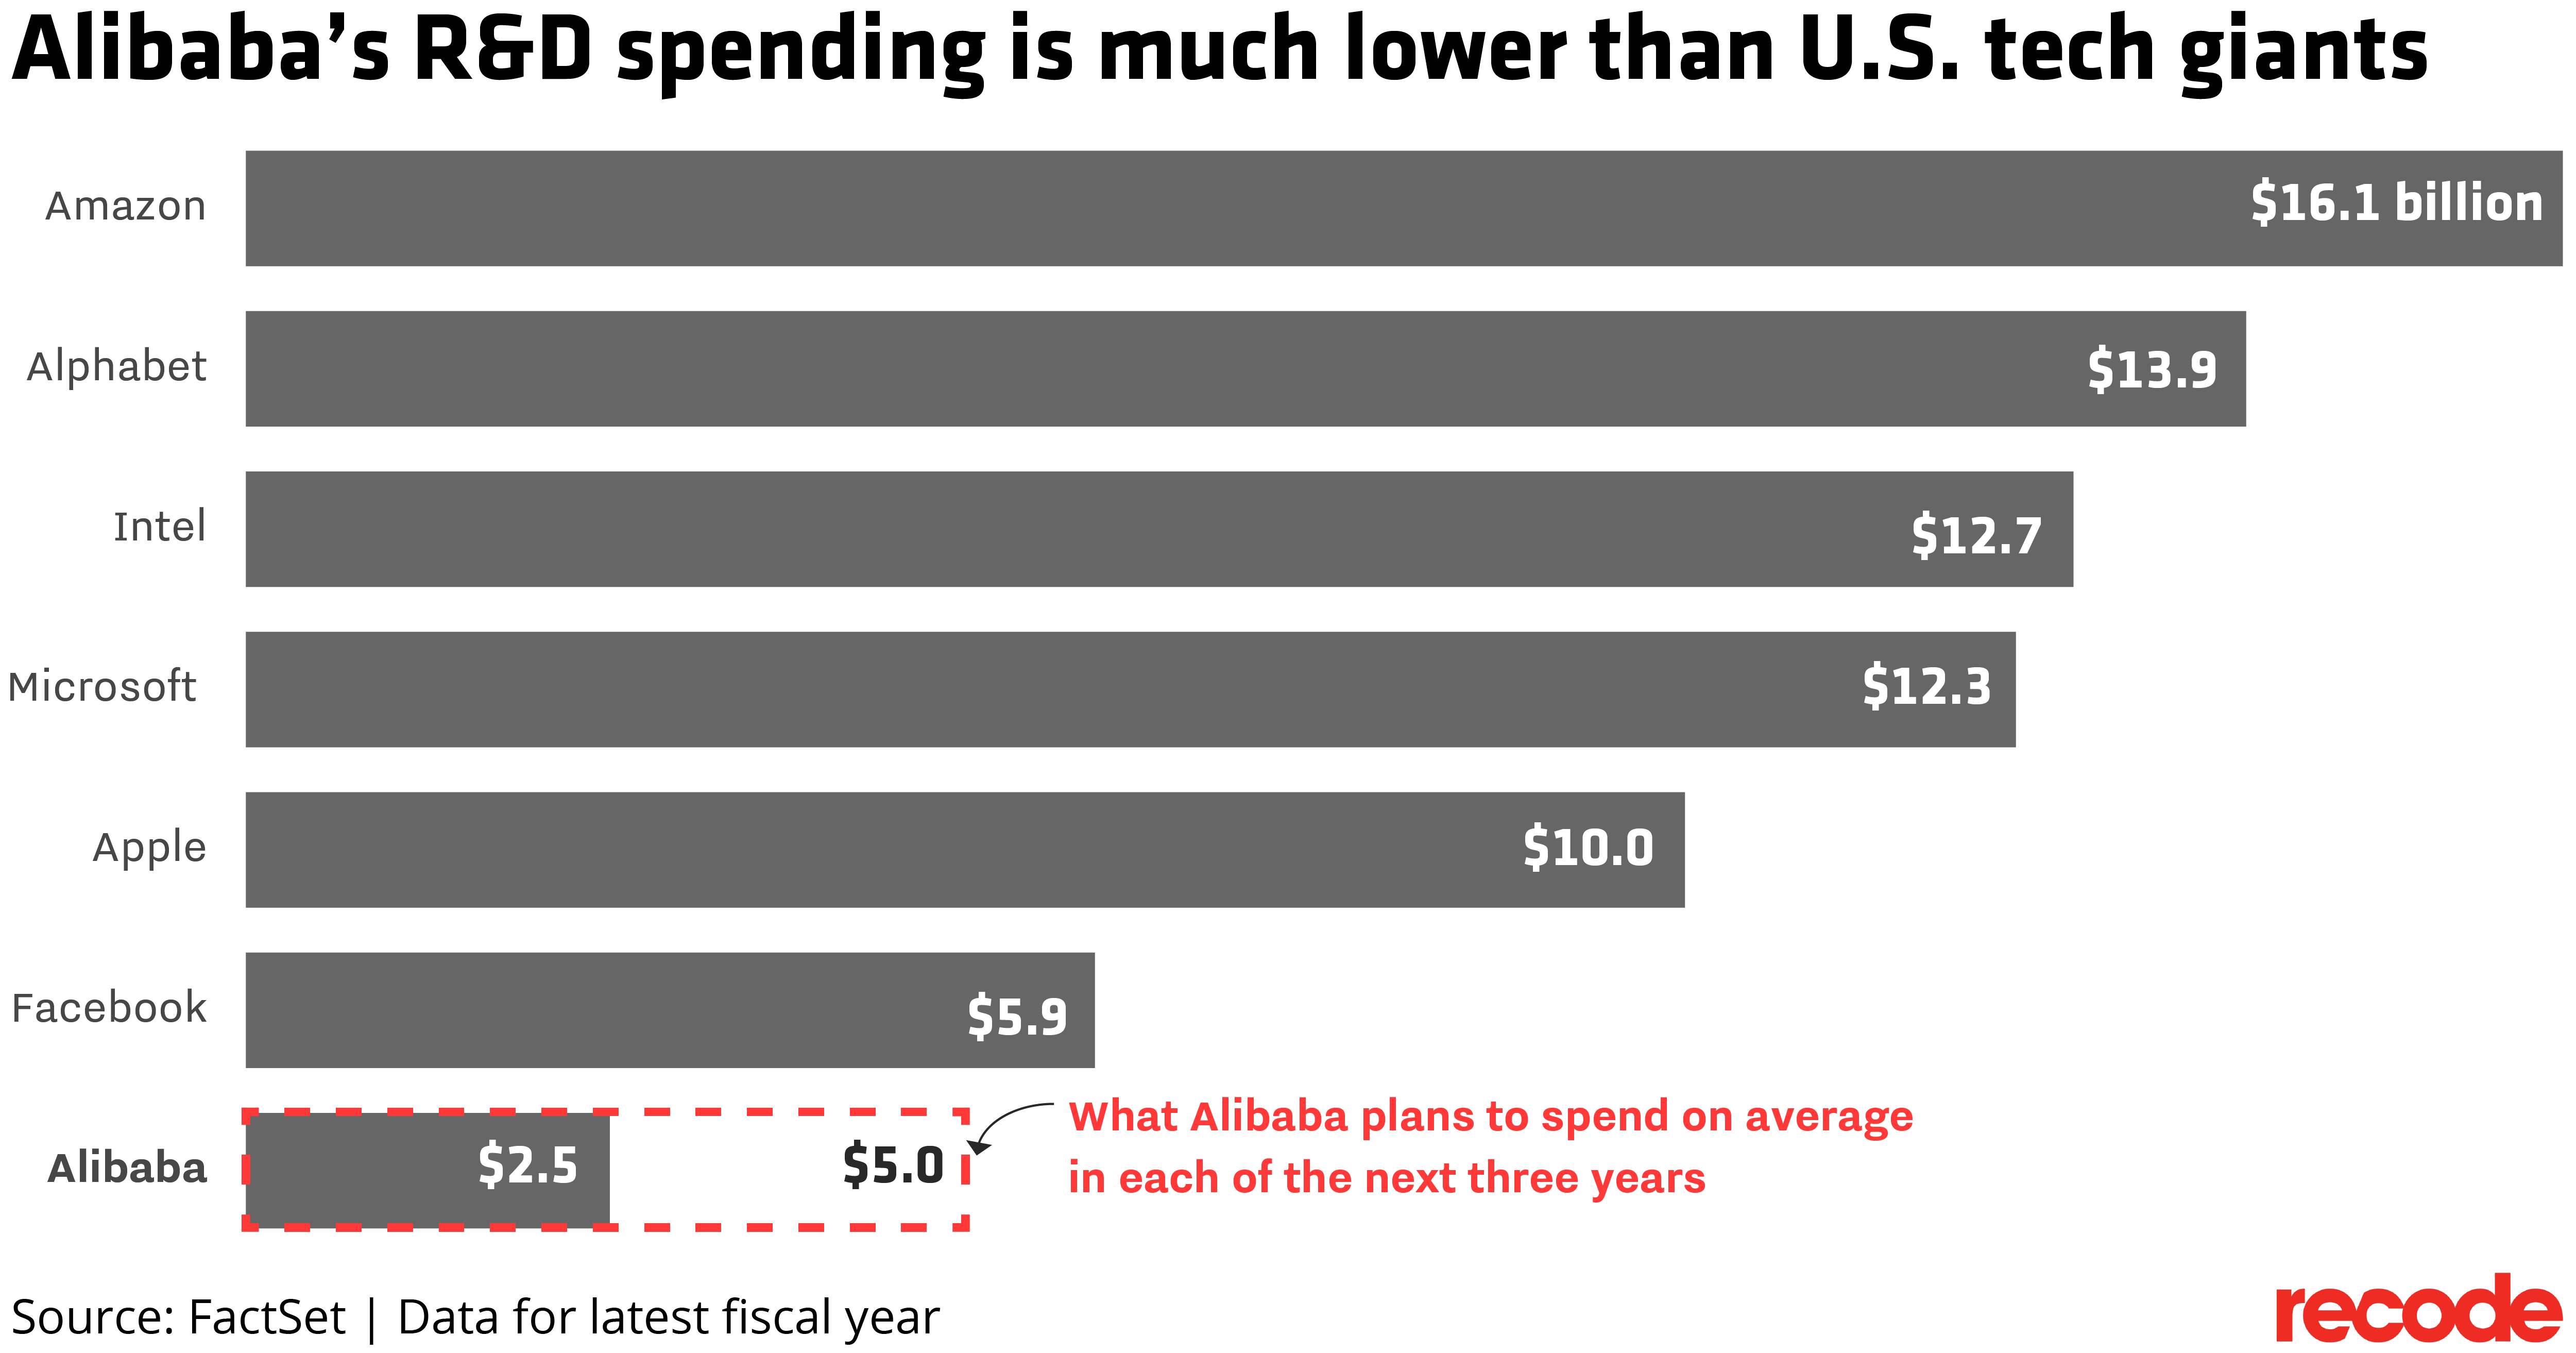 Alibaba's R&D spending is much lower than U.S. tech giants